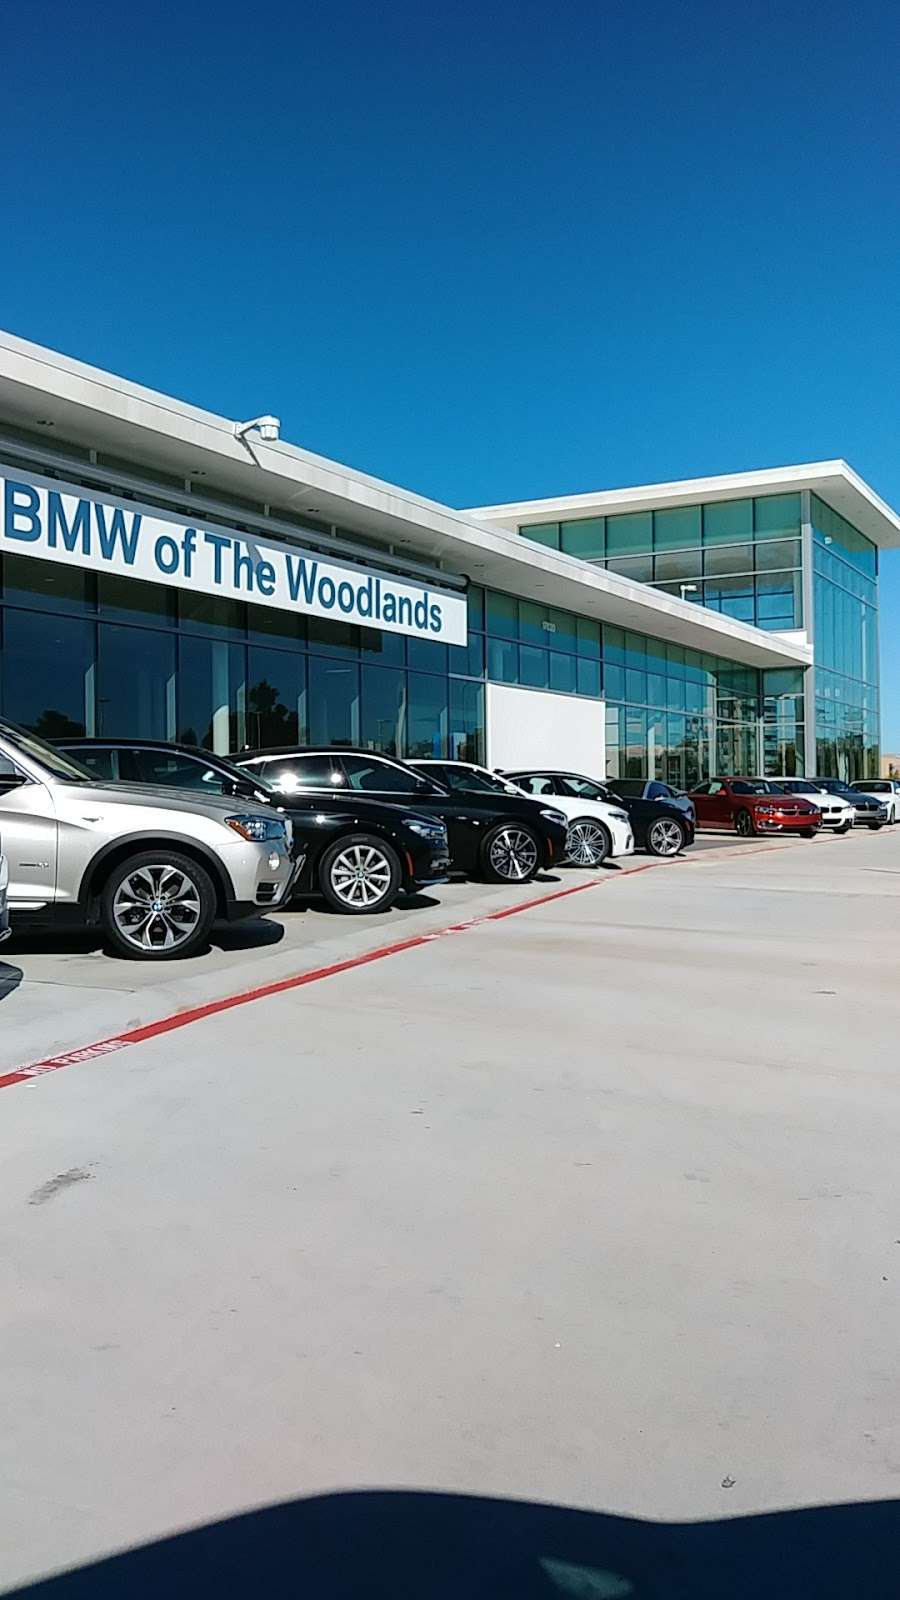 Bmw Of The Woodlands 17830 N Fwy Service Rd The Woodlands Tx 77384 Usa